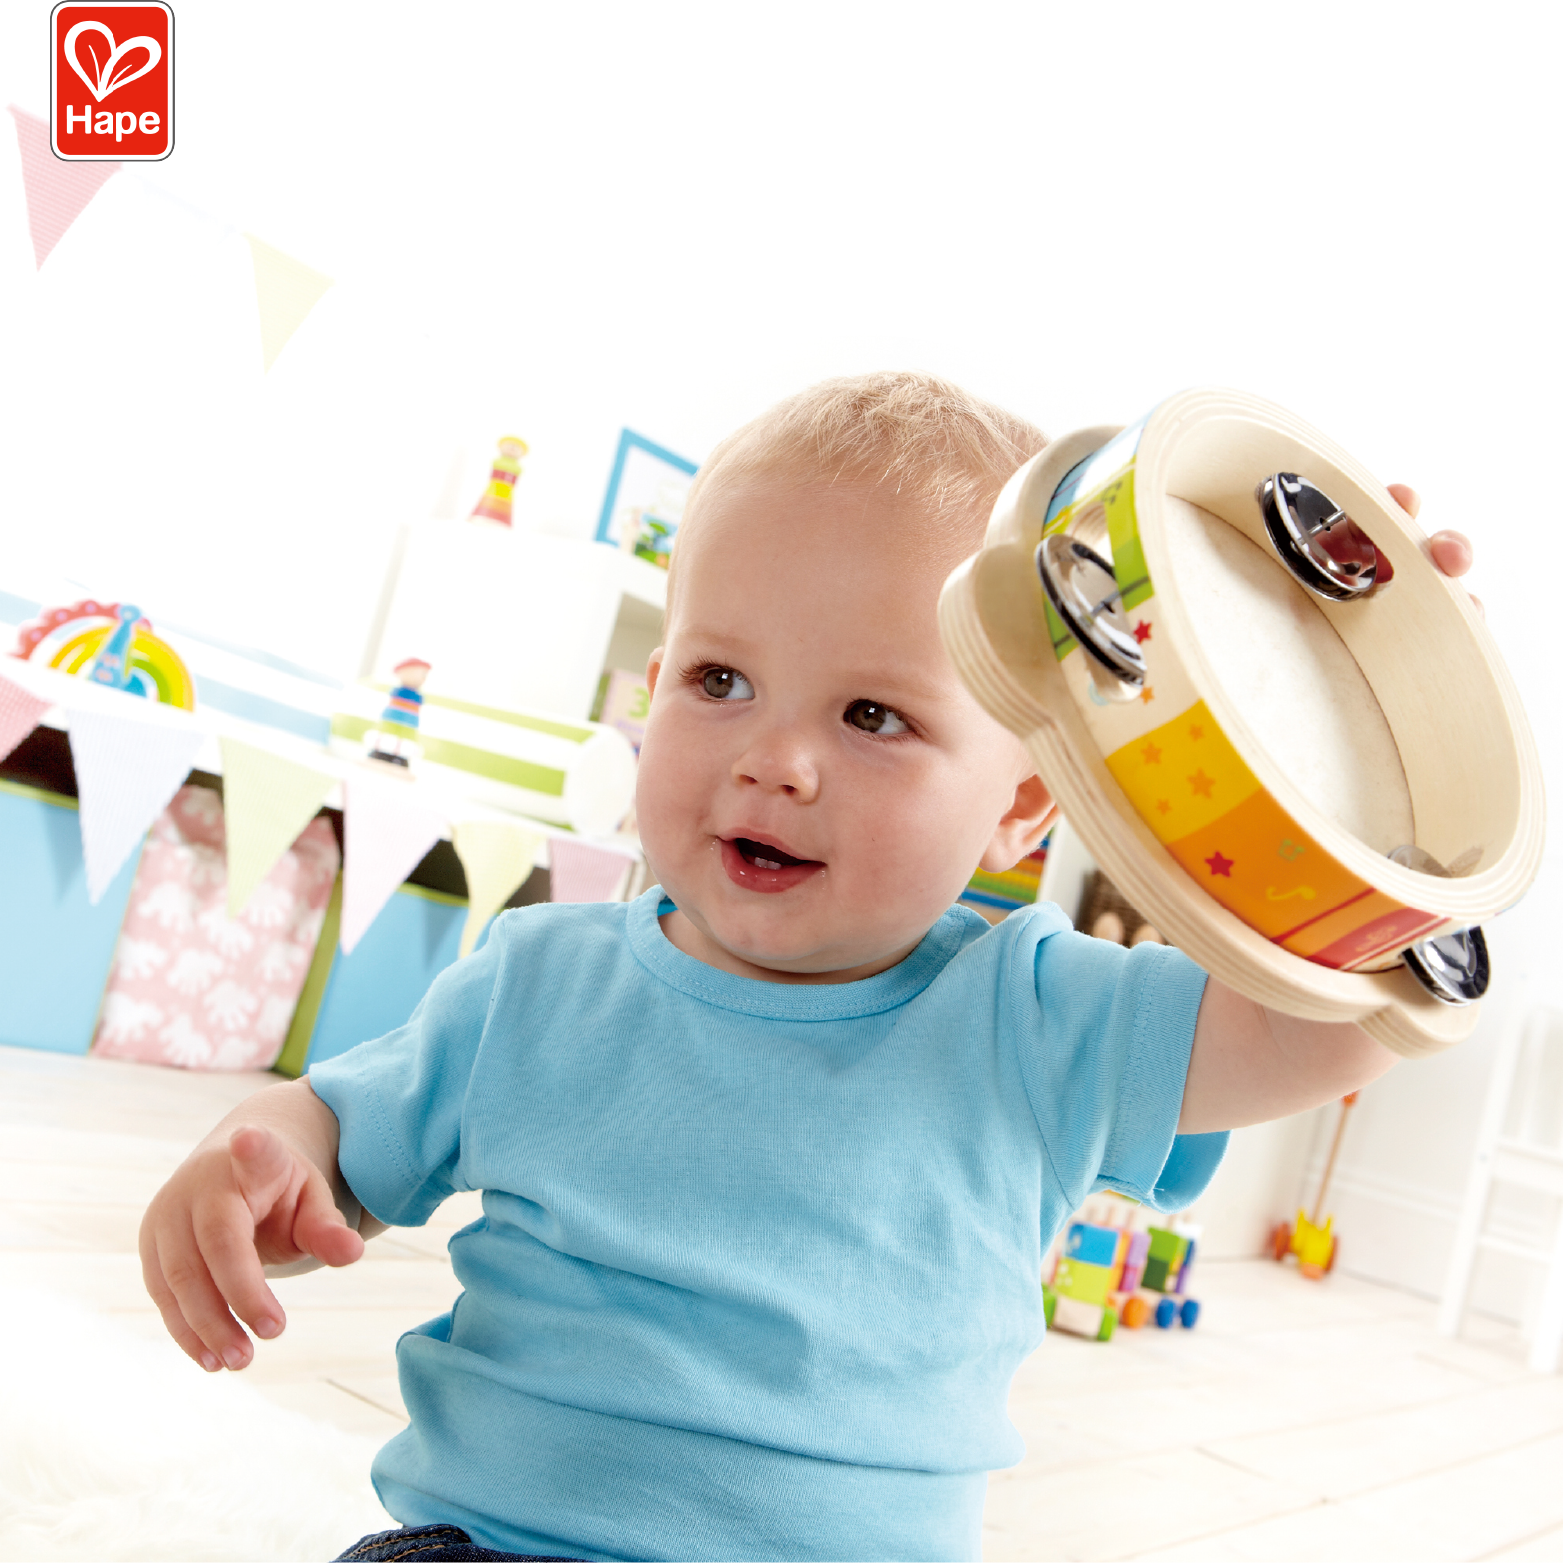 Hape 2 in 1 Tambourine and Drum Wooden Music Toy for Baby